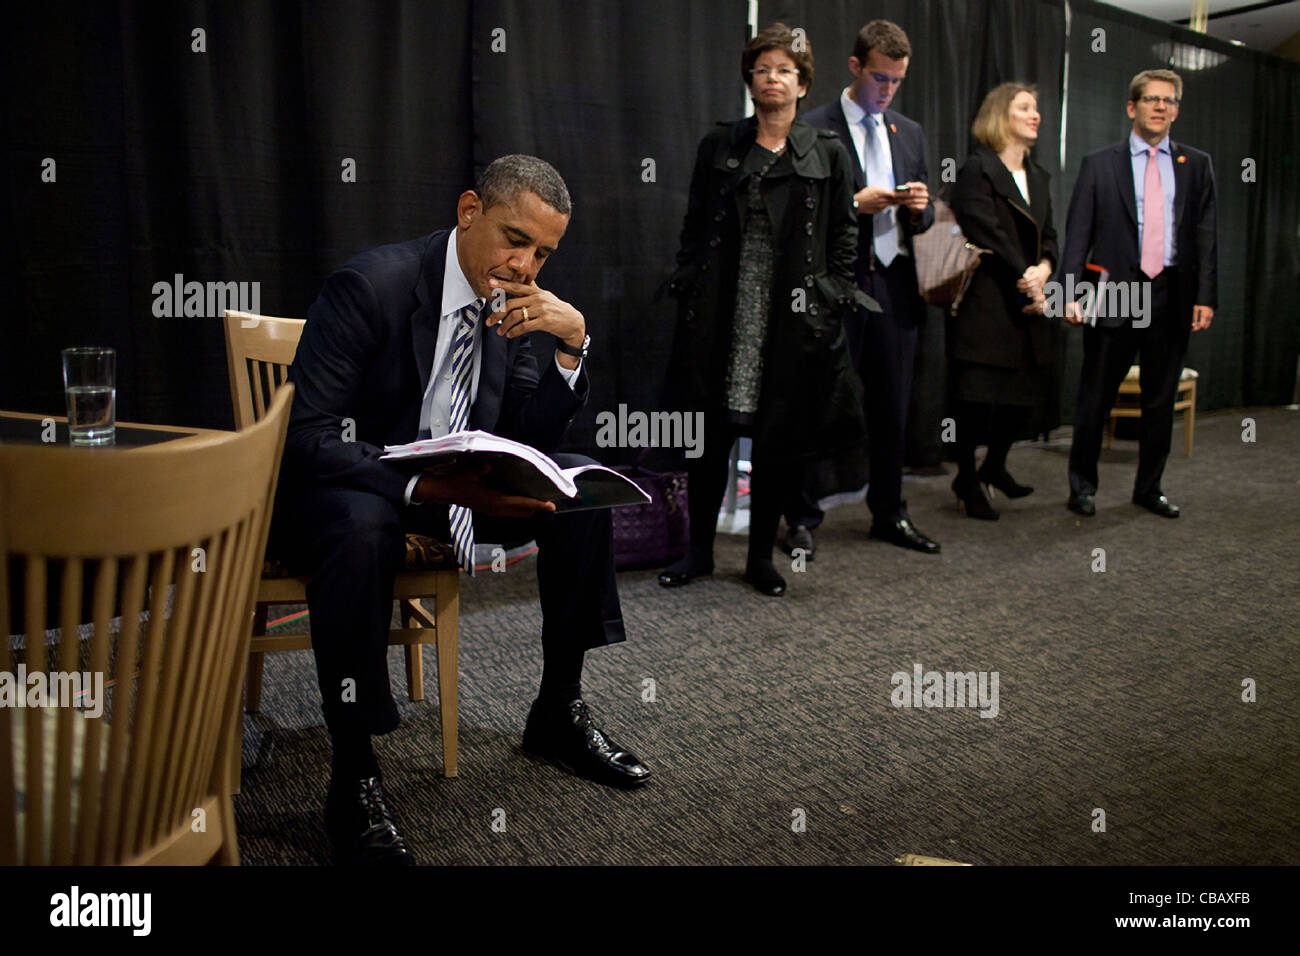 President Barack Obama waits with staff backstage before an event at the Pepsi Center in Denver, Colo., Oct. 25, - Stock Image